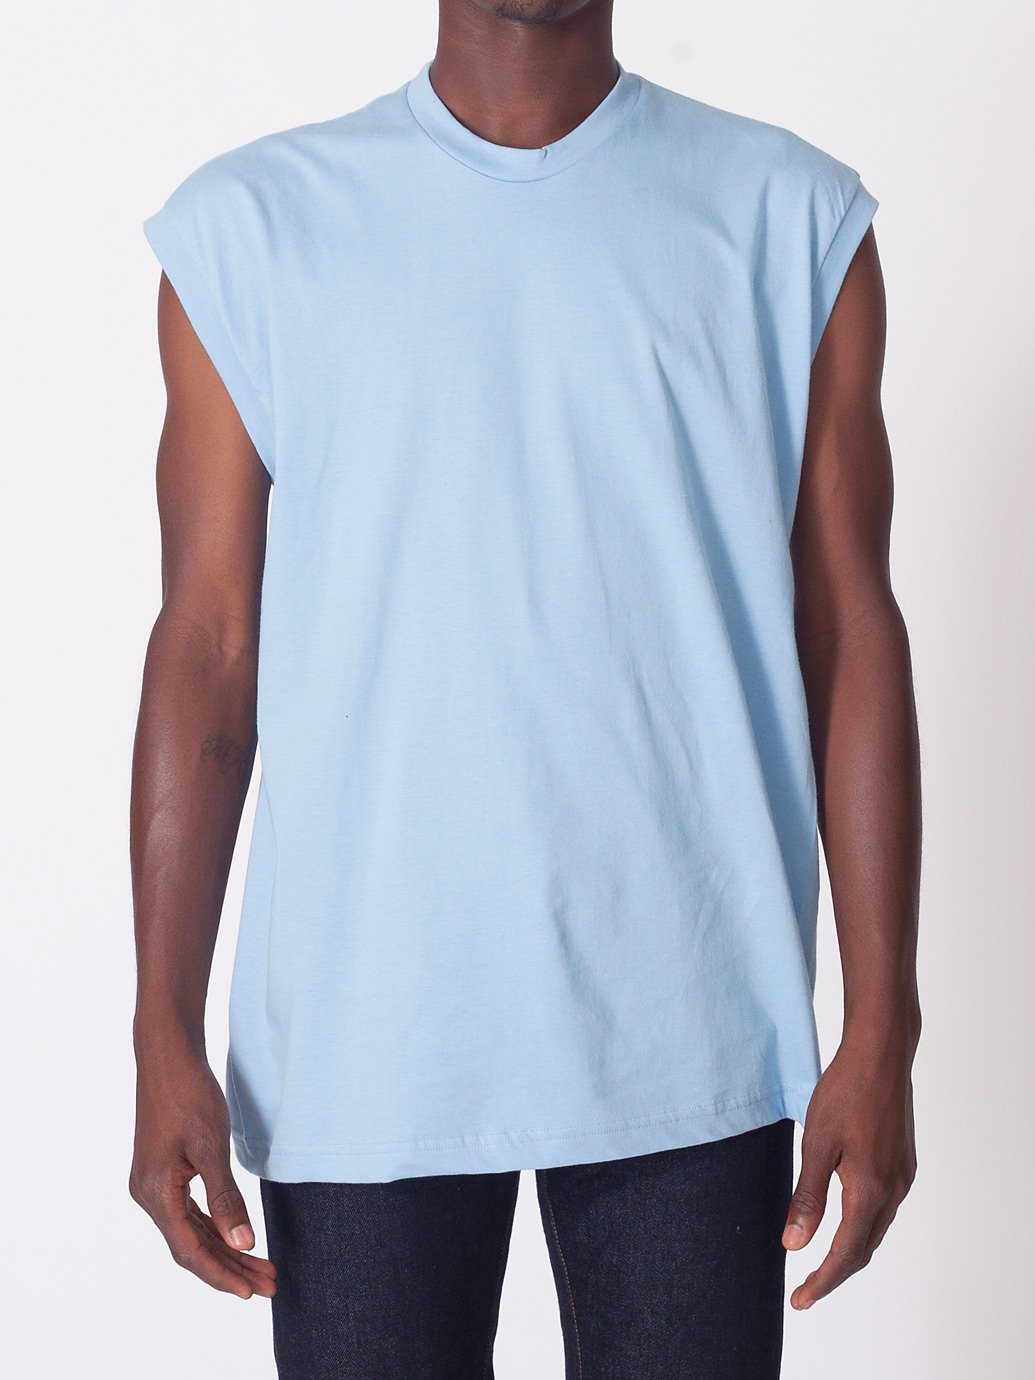 17015b4c7bb3fe American Apparel Fine Jersey Muscle Tee - Evan Webster INK